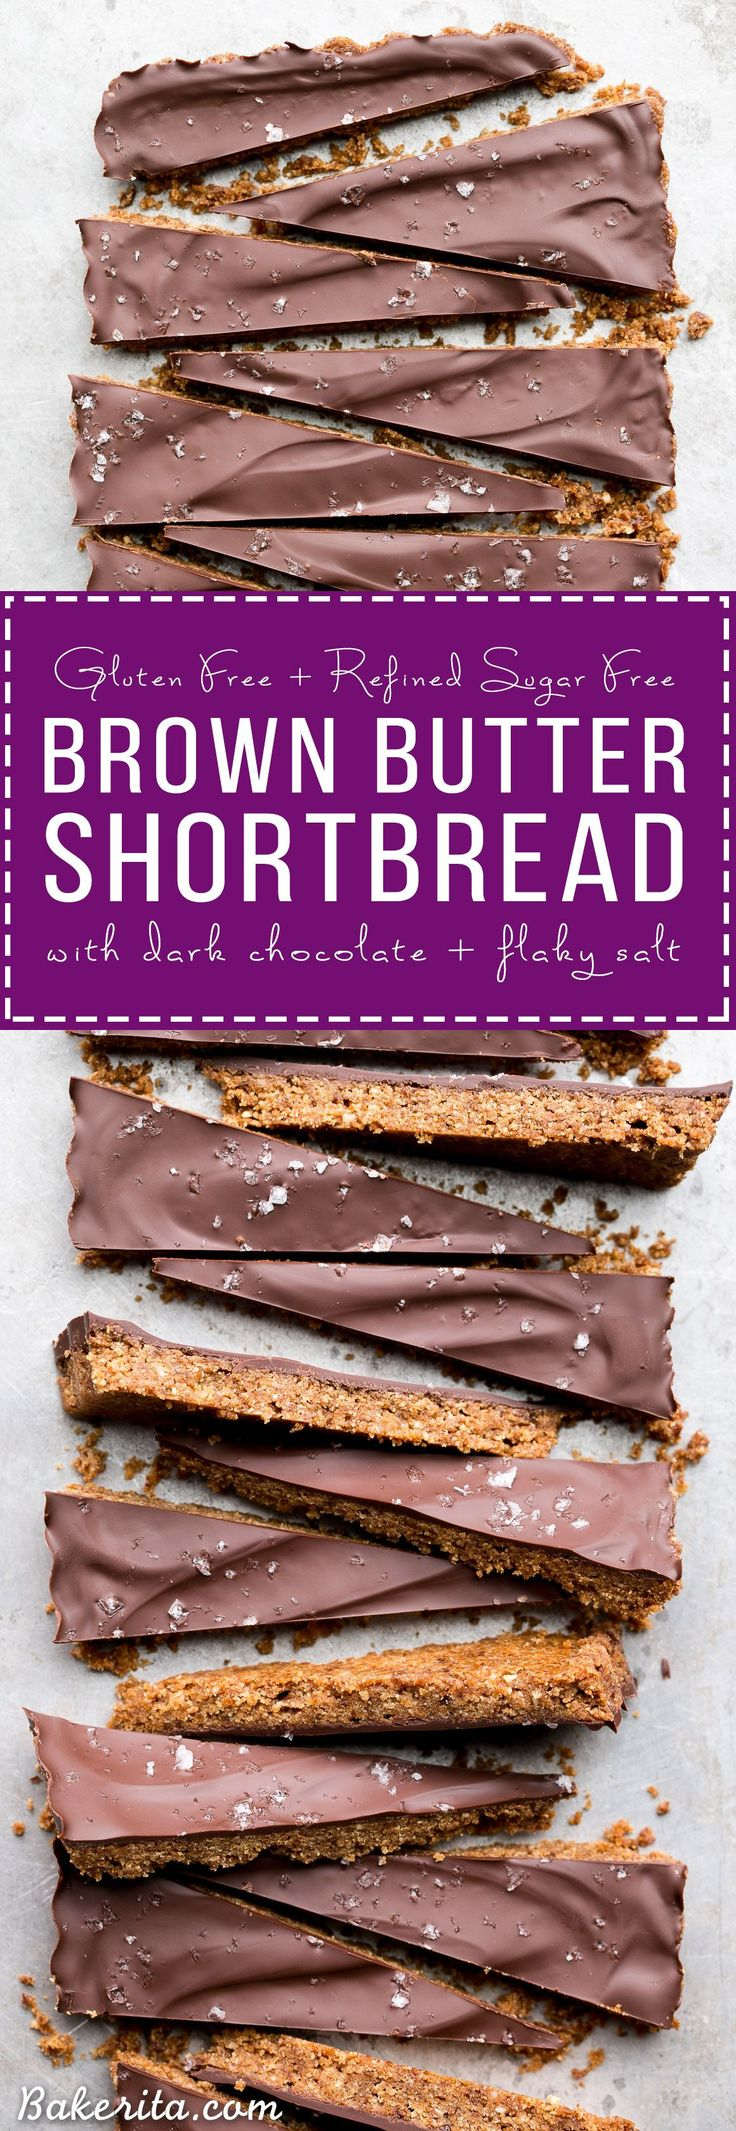 These Brown Butter Shortbread are crisp and buttery with dark chocolate + flaky sea salt on top. These gluten free & refined sugar free cookies melt in your mouth and make the perfect addition to your holiday cookie tray!